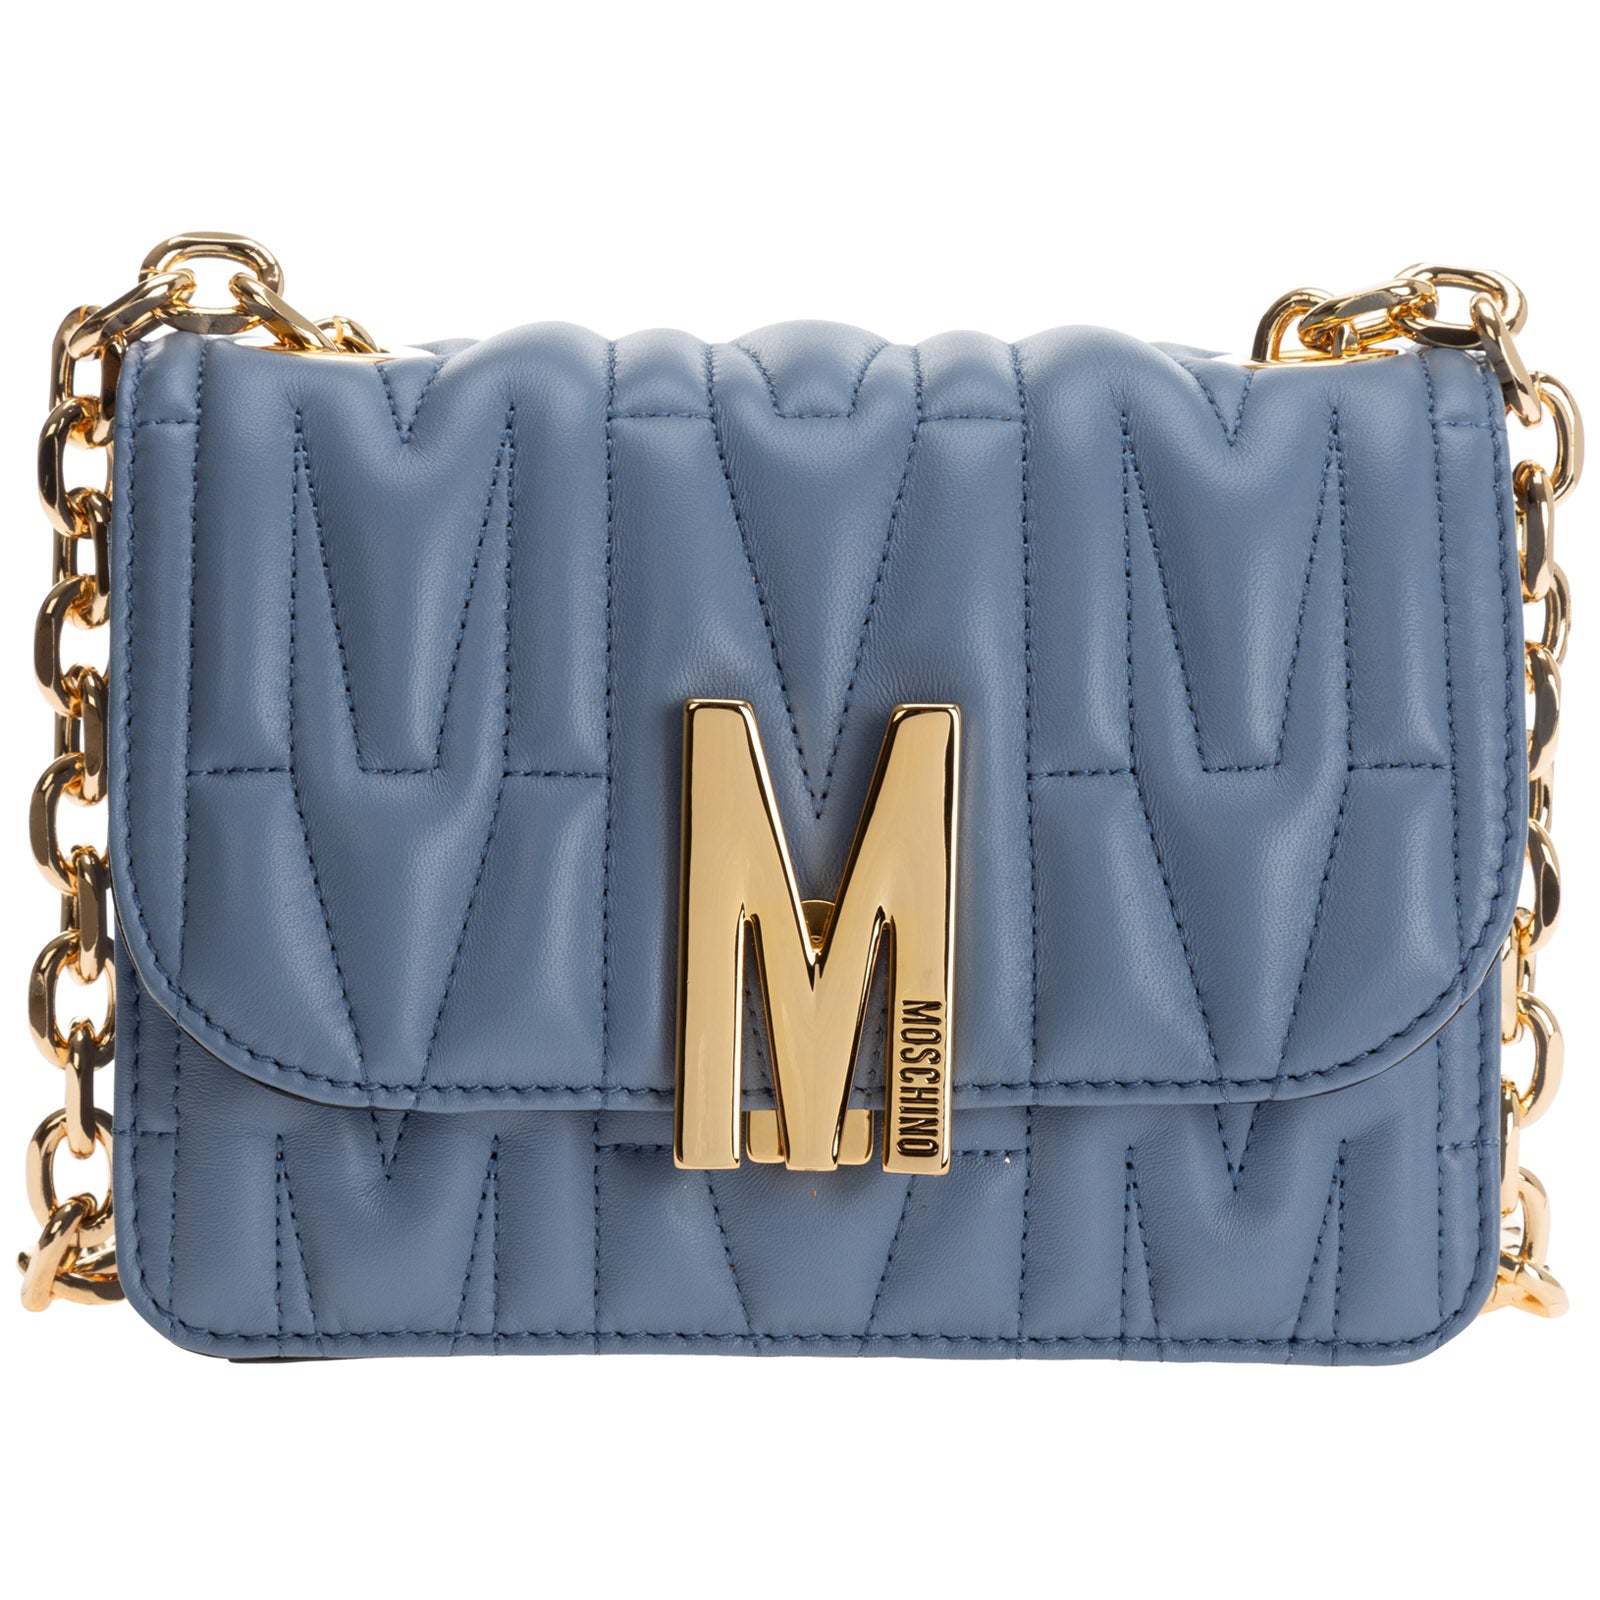 Moschino MOSCHINO M QUILTED SHOULDER BAG